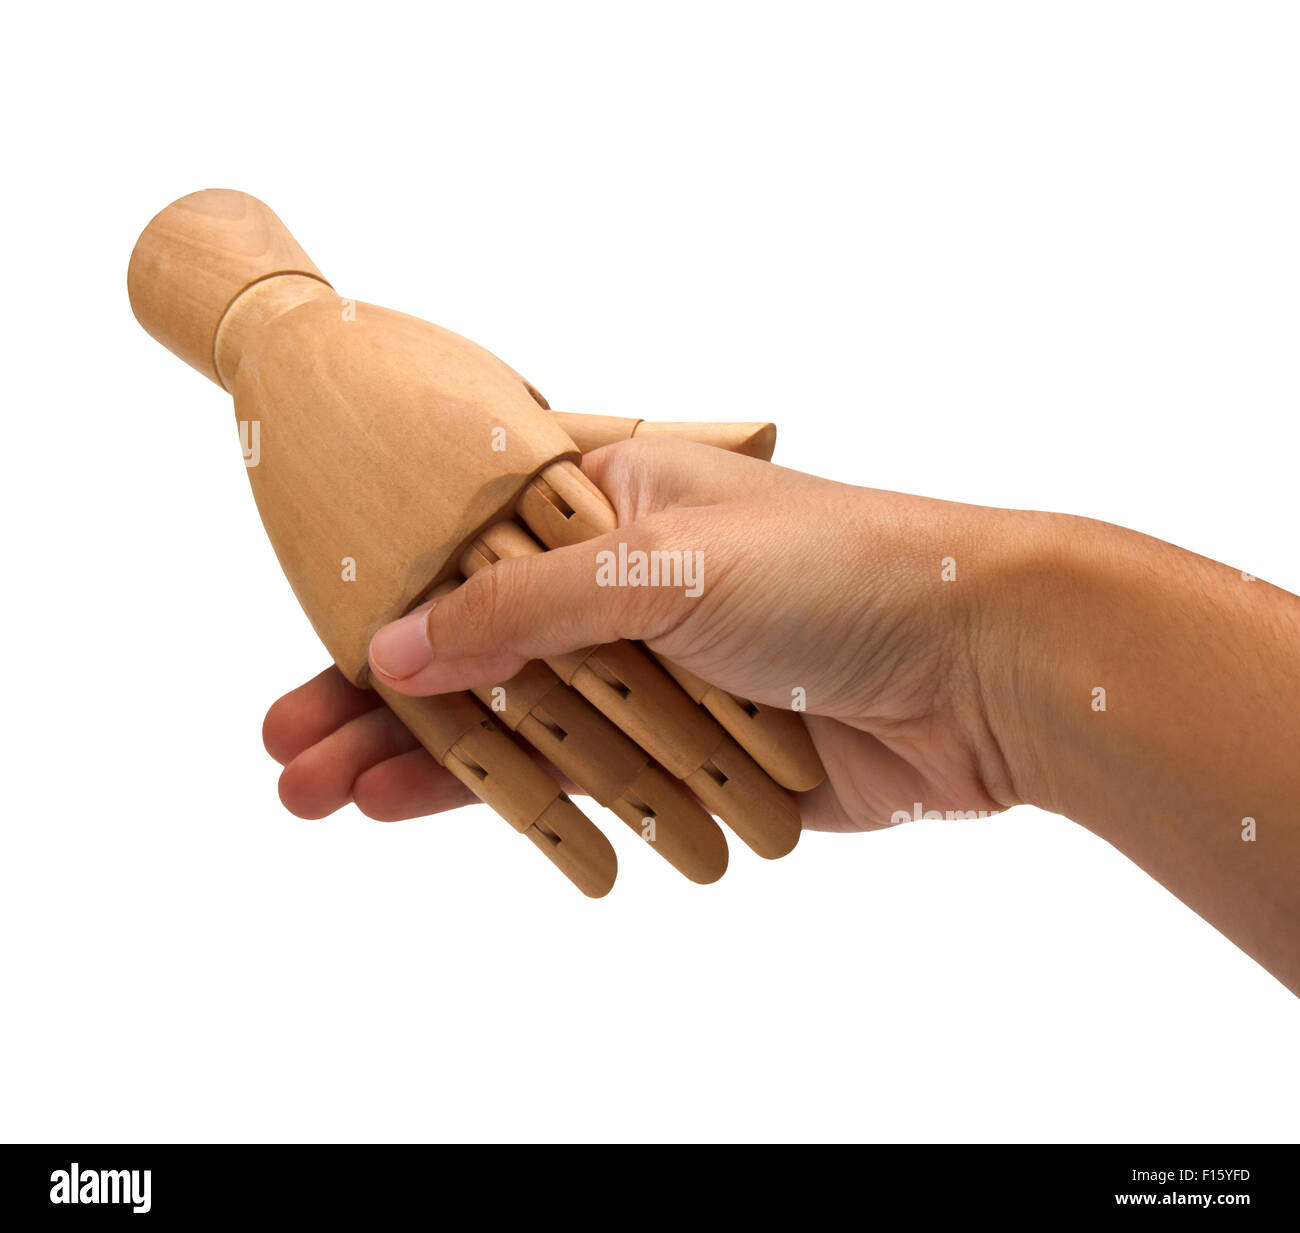 Handshake between a human hand and a wooden hand - Stock Image